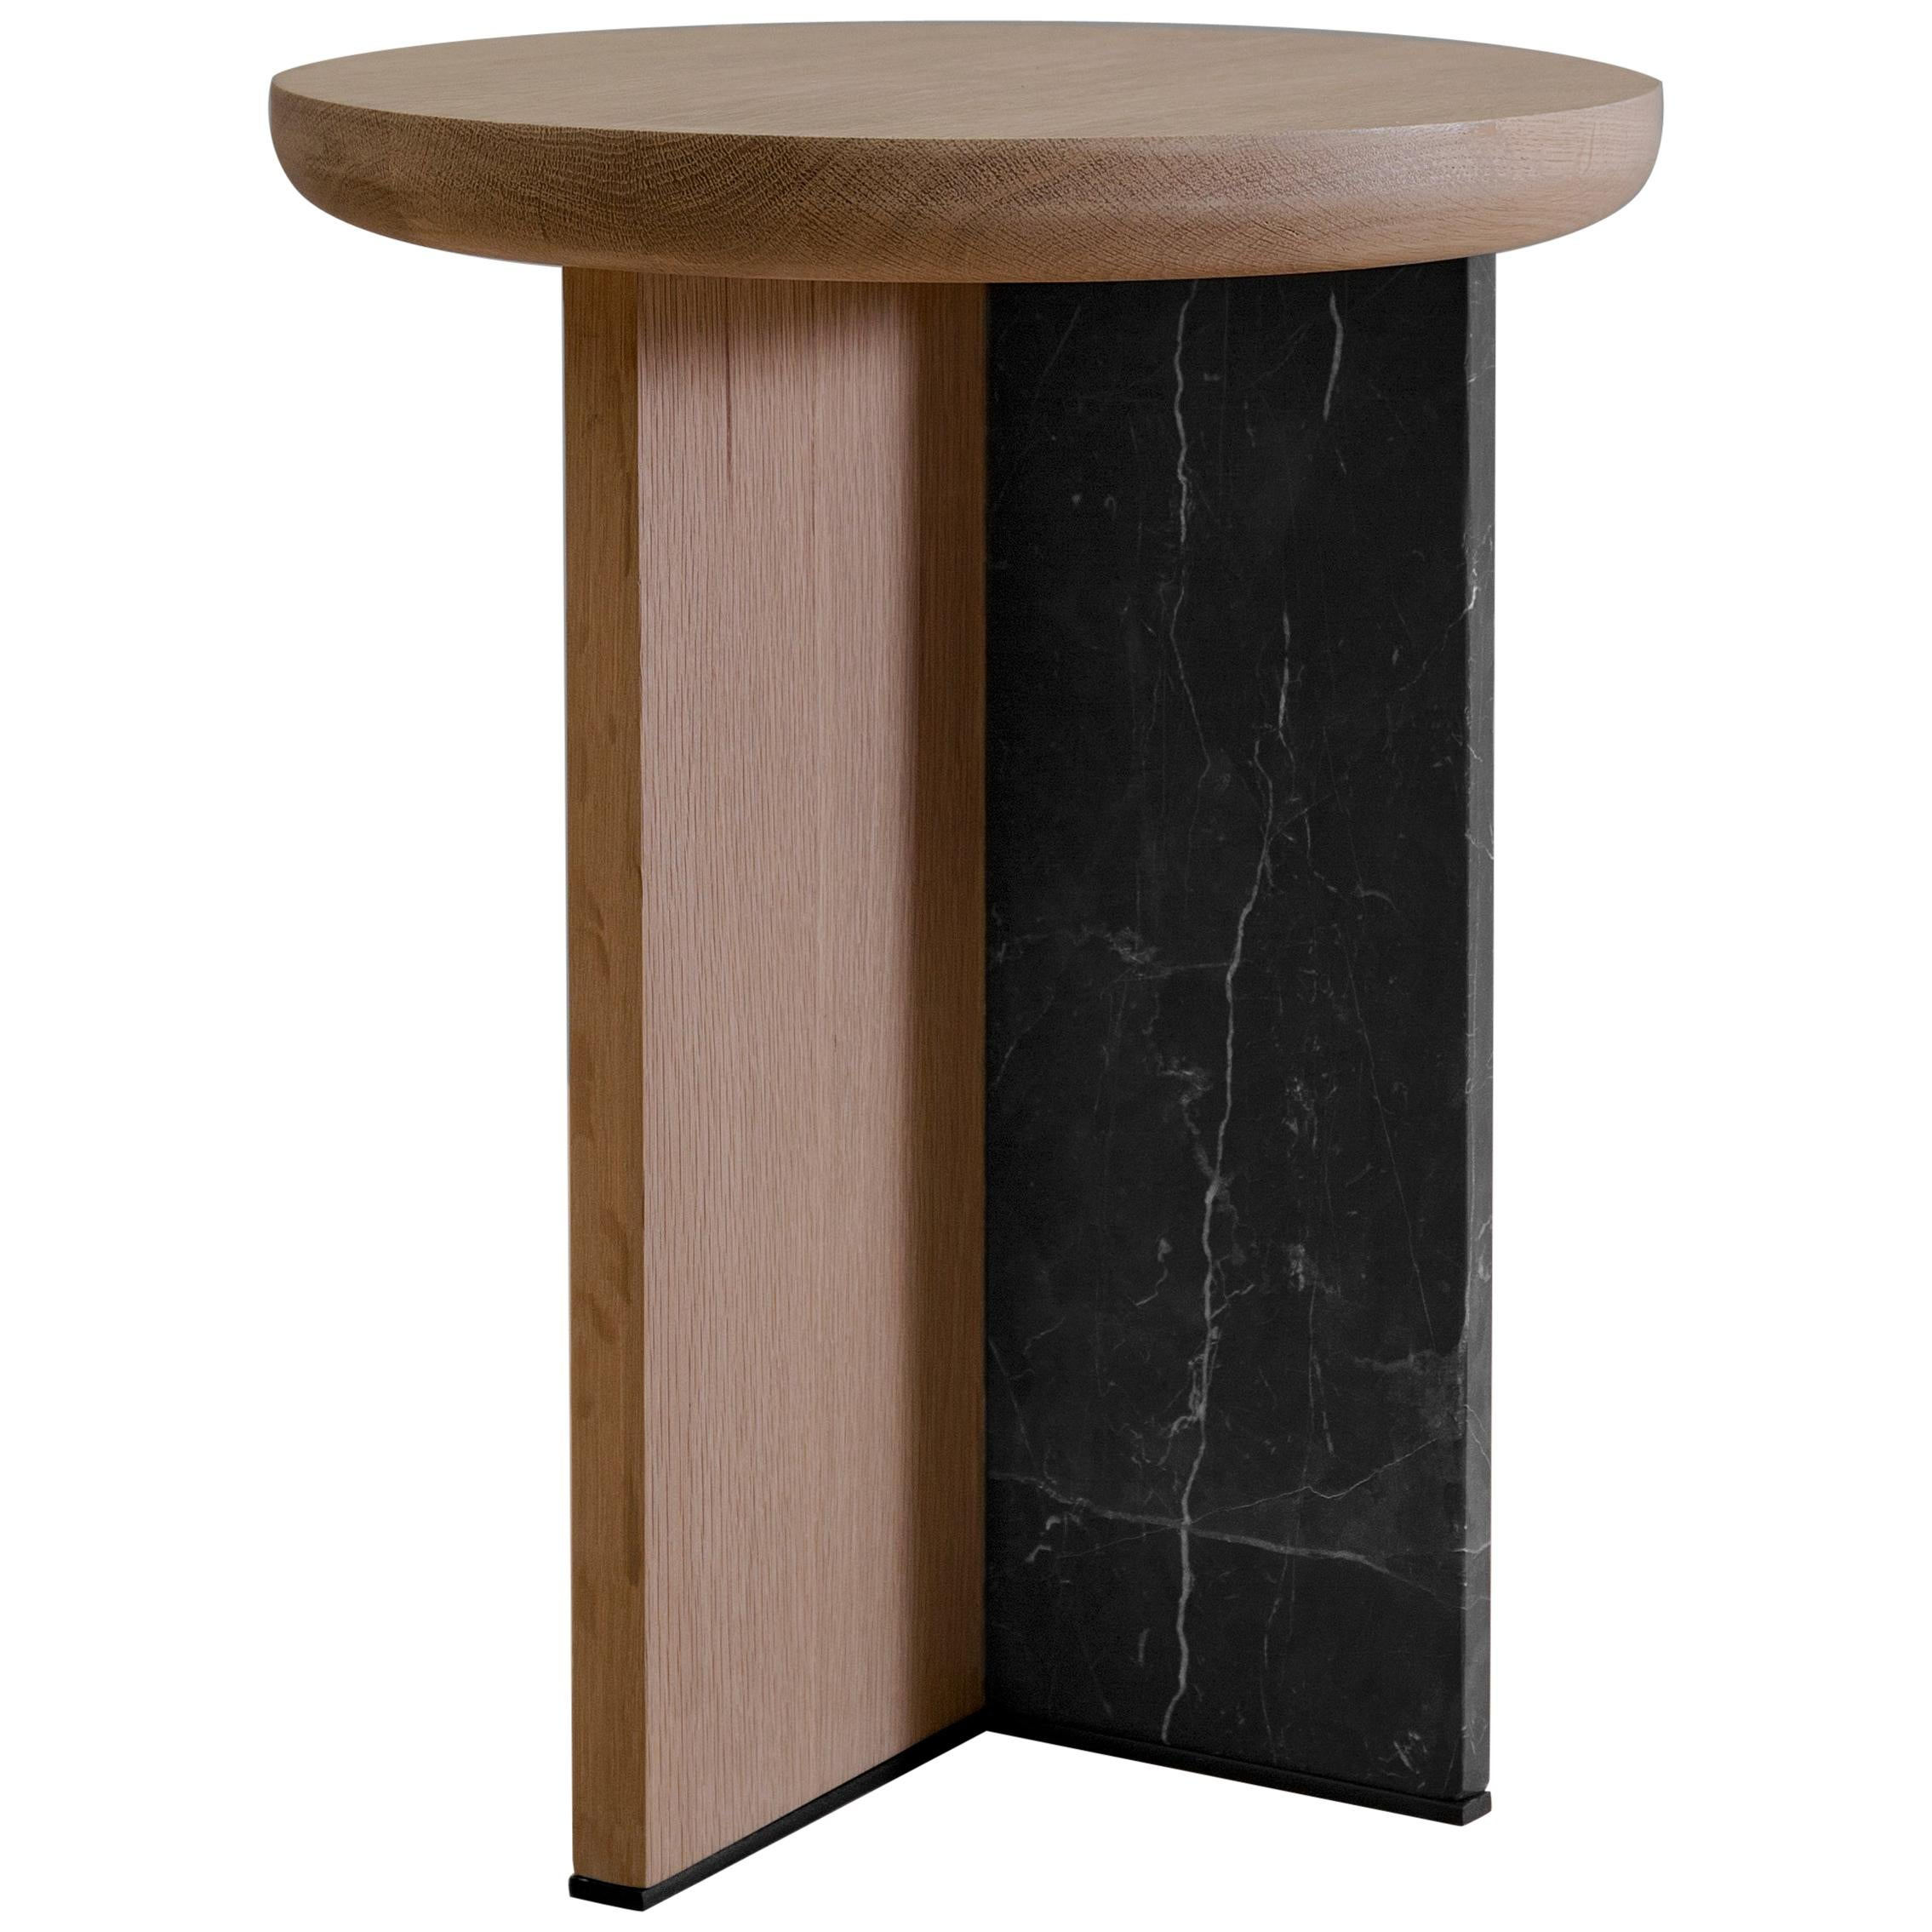 Antropología 04, Sculptural Stool and Side Table